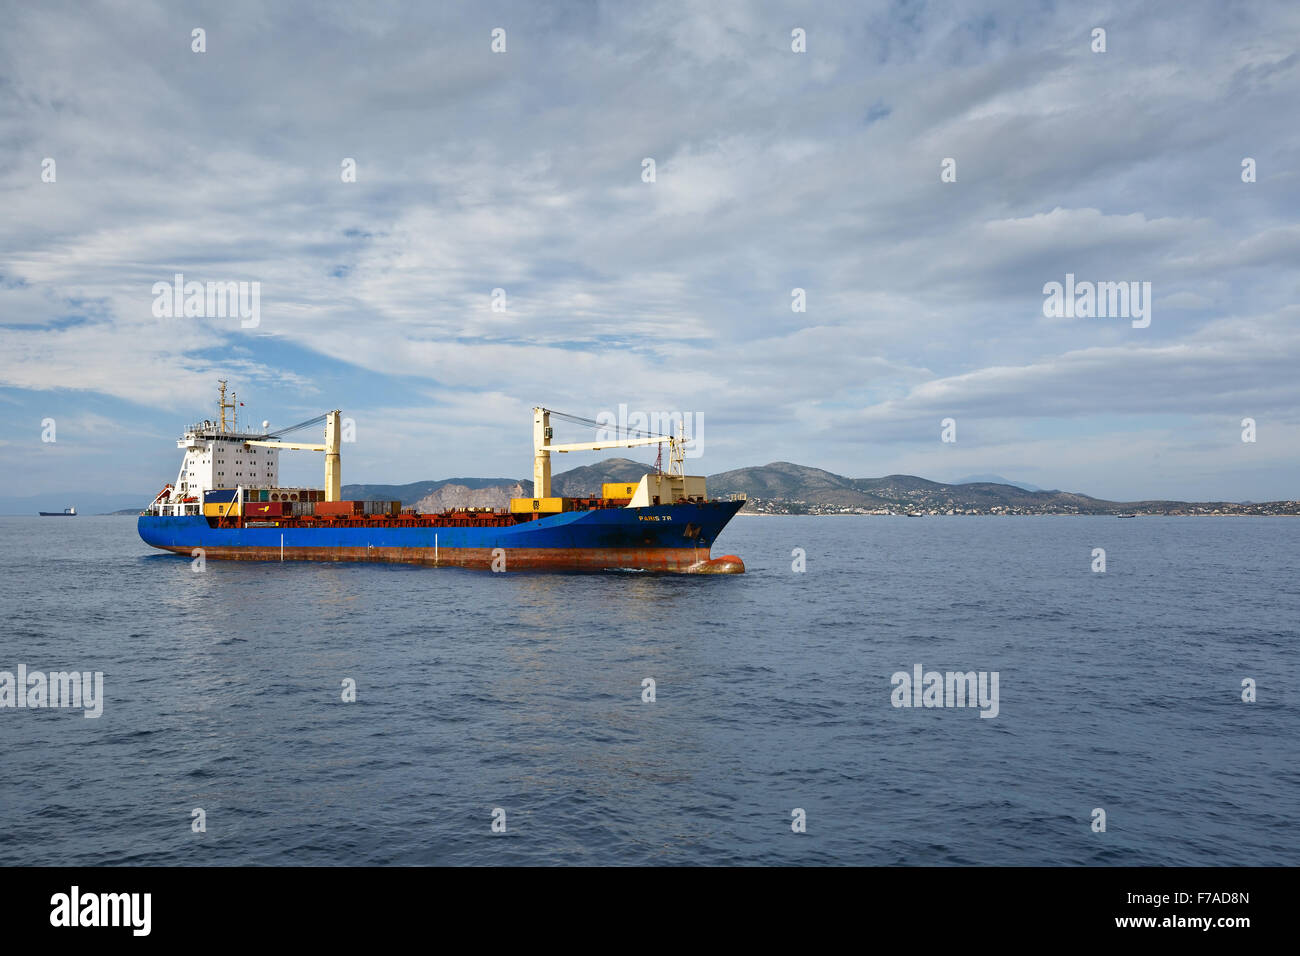 Container ship heading to the port of Piraeus, Greece - Stock Image